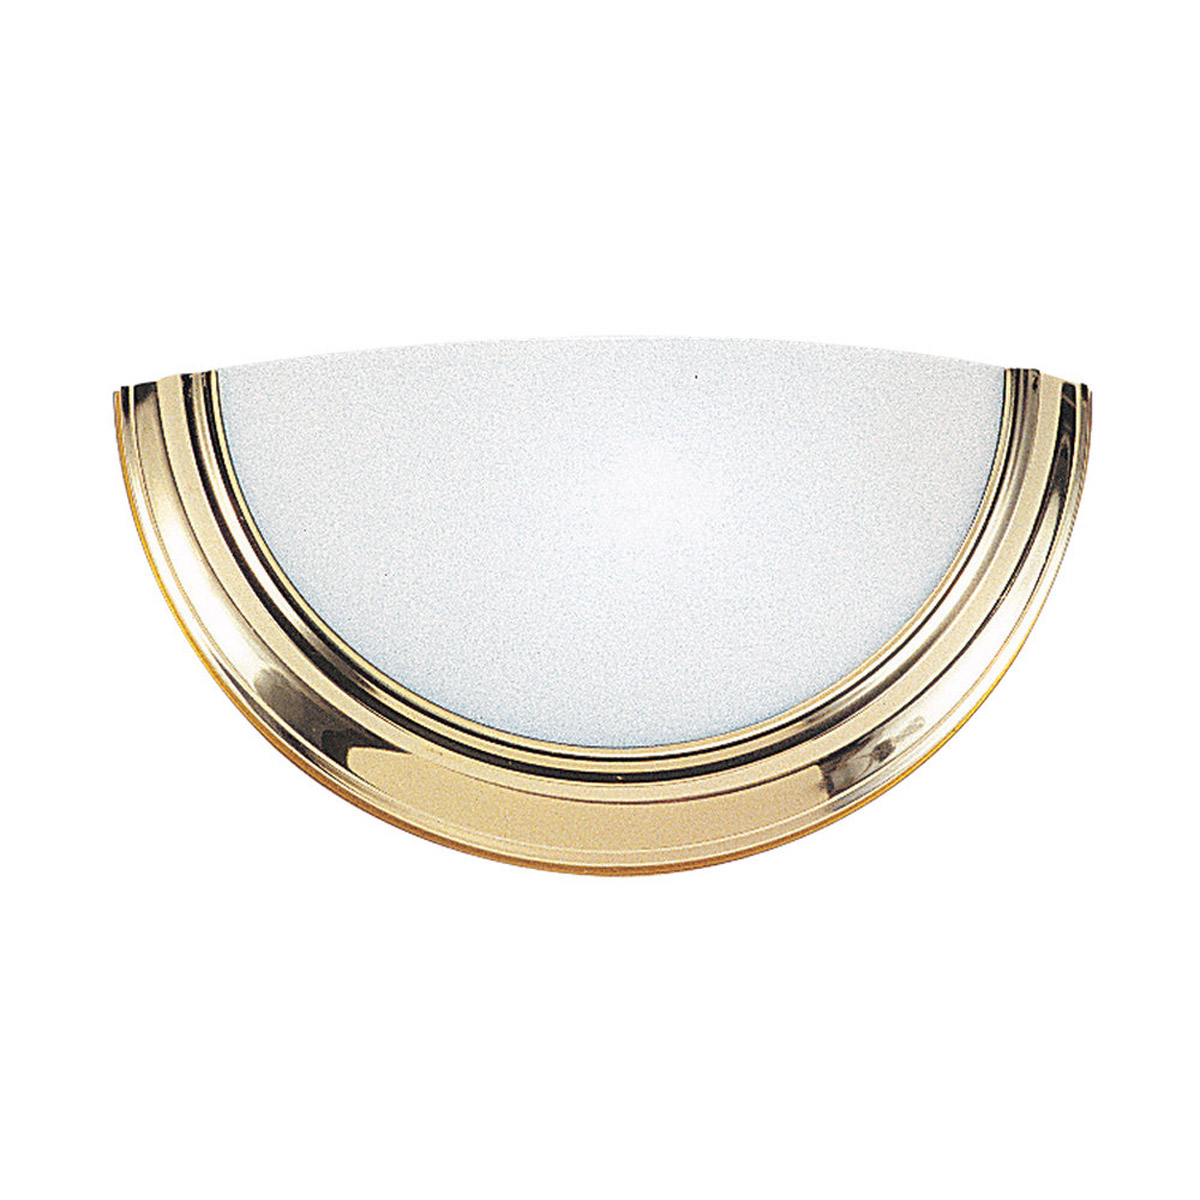 Sea Gull Lighting Signature 1 Light Bath Vanity in Polished Brass 4135-02 photo